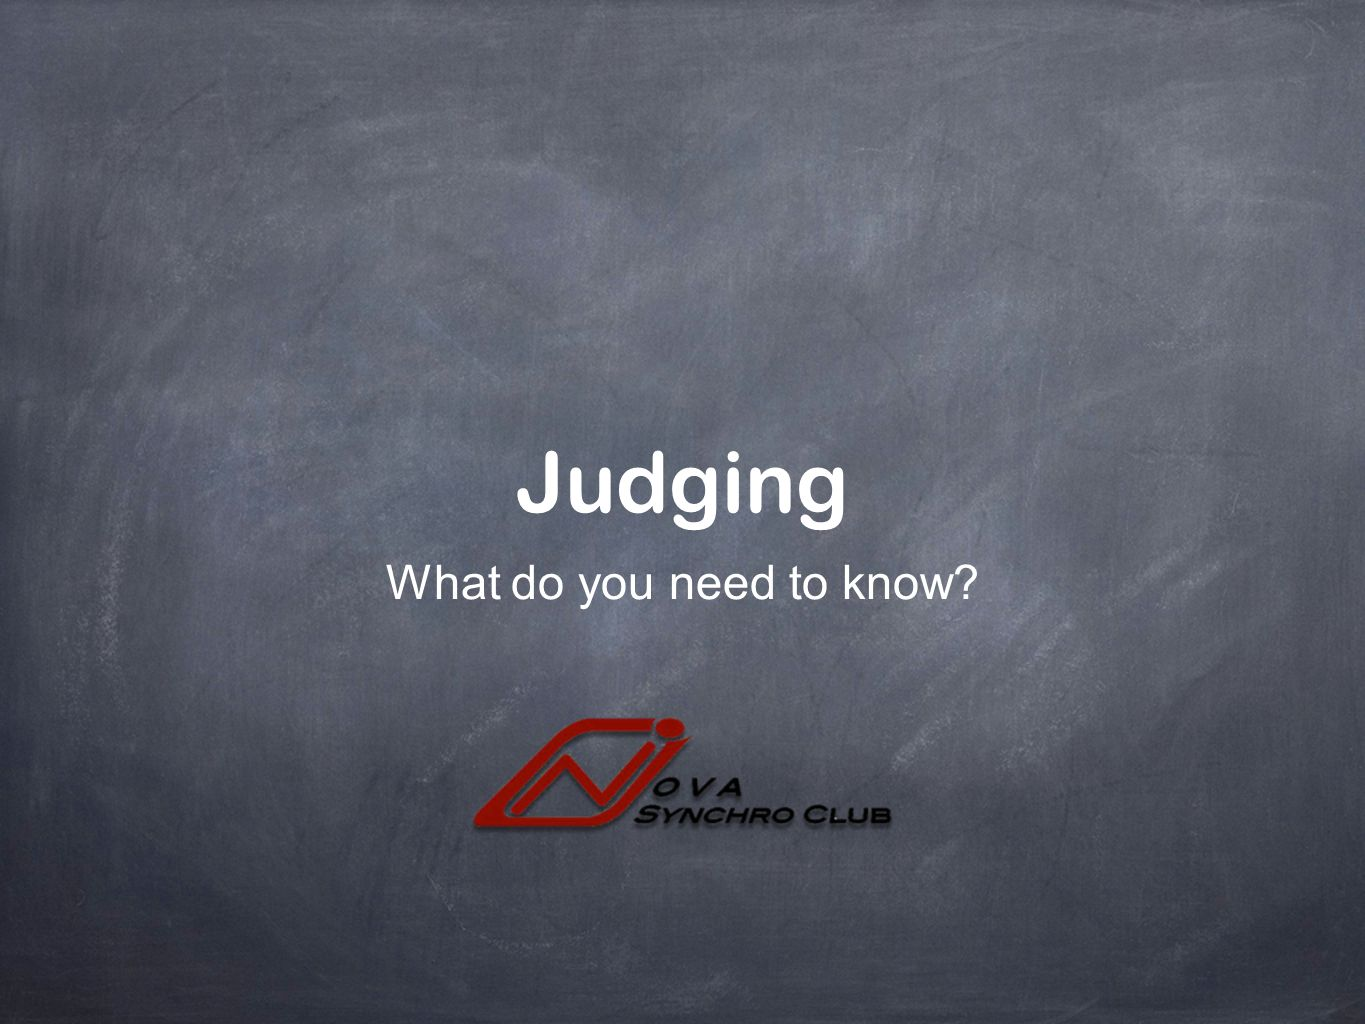 Judging What do you need to know